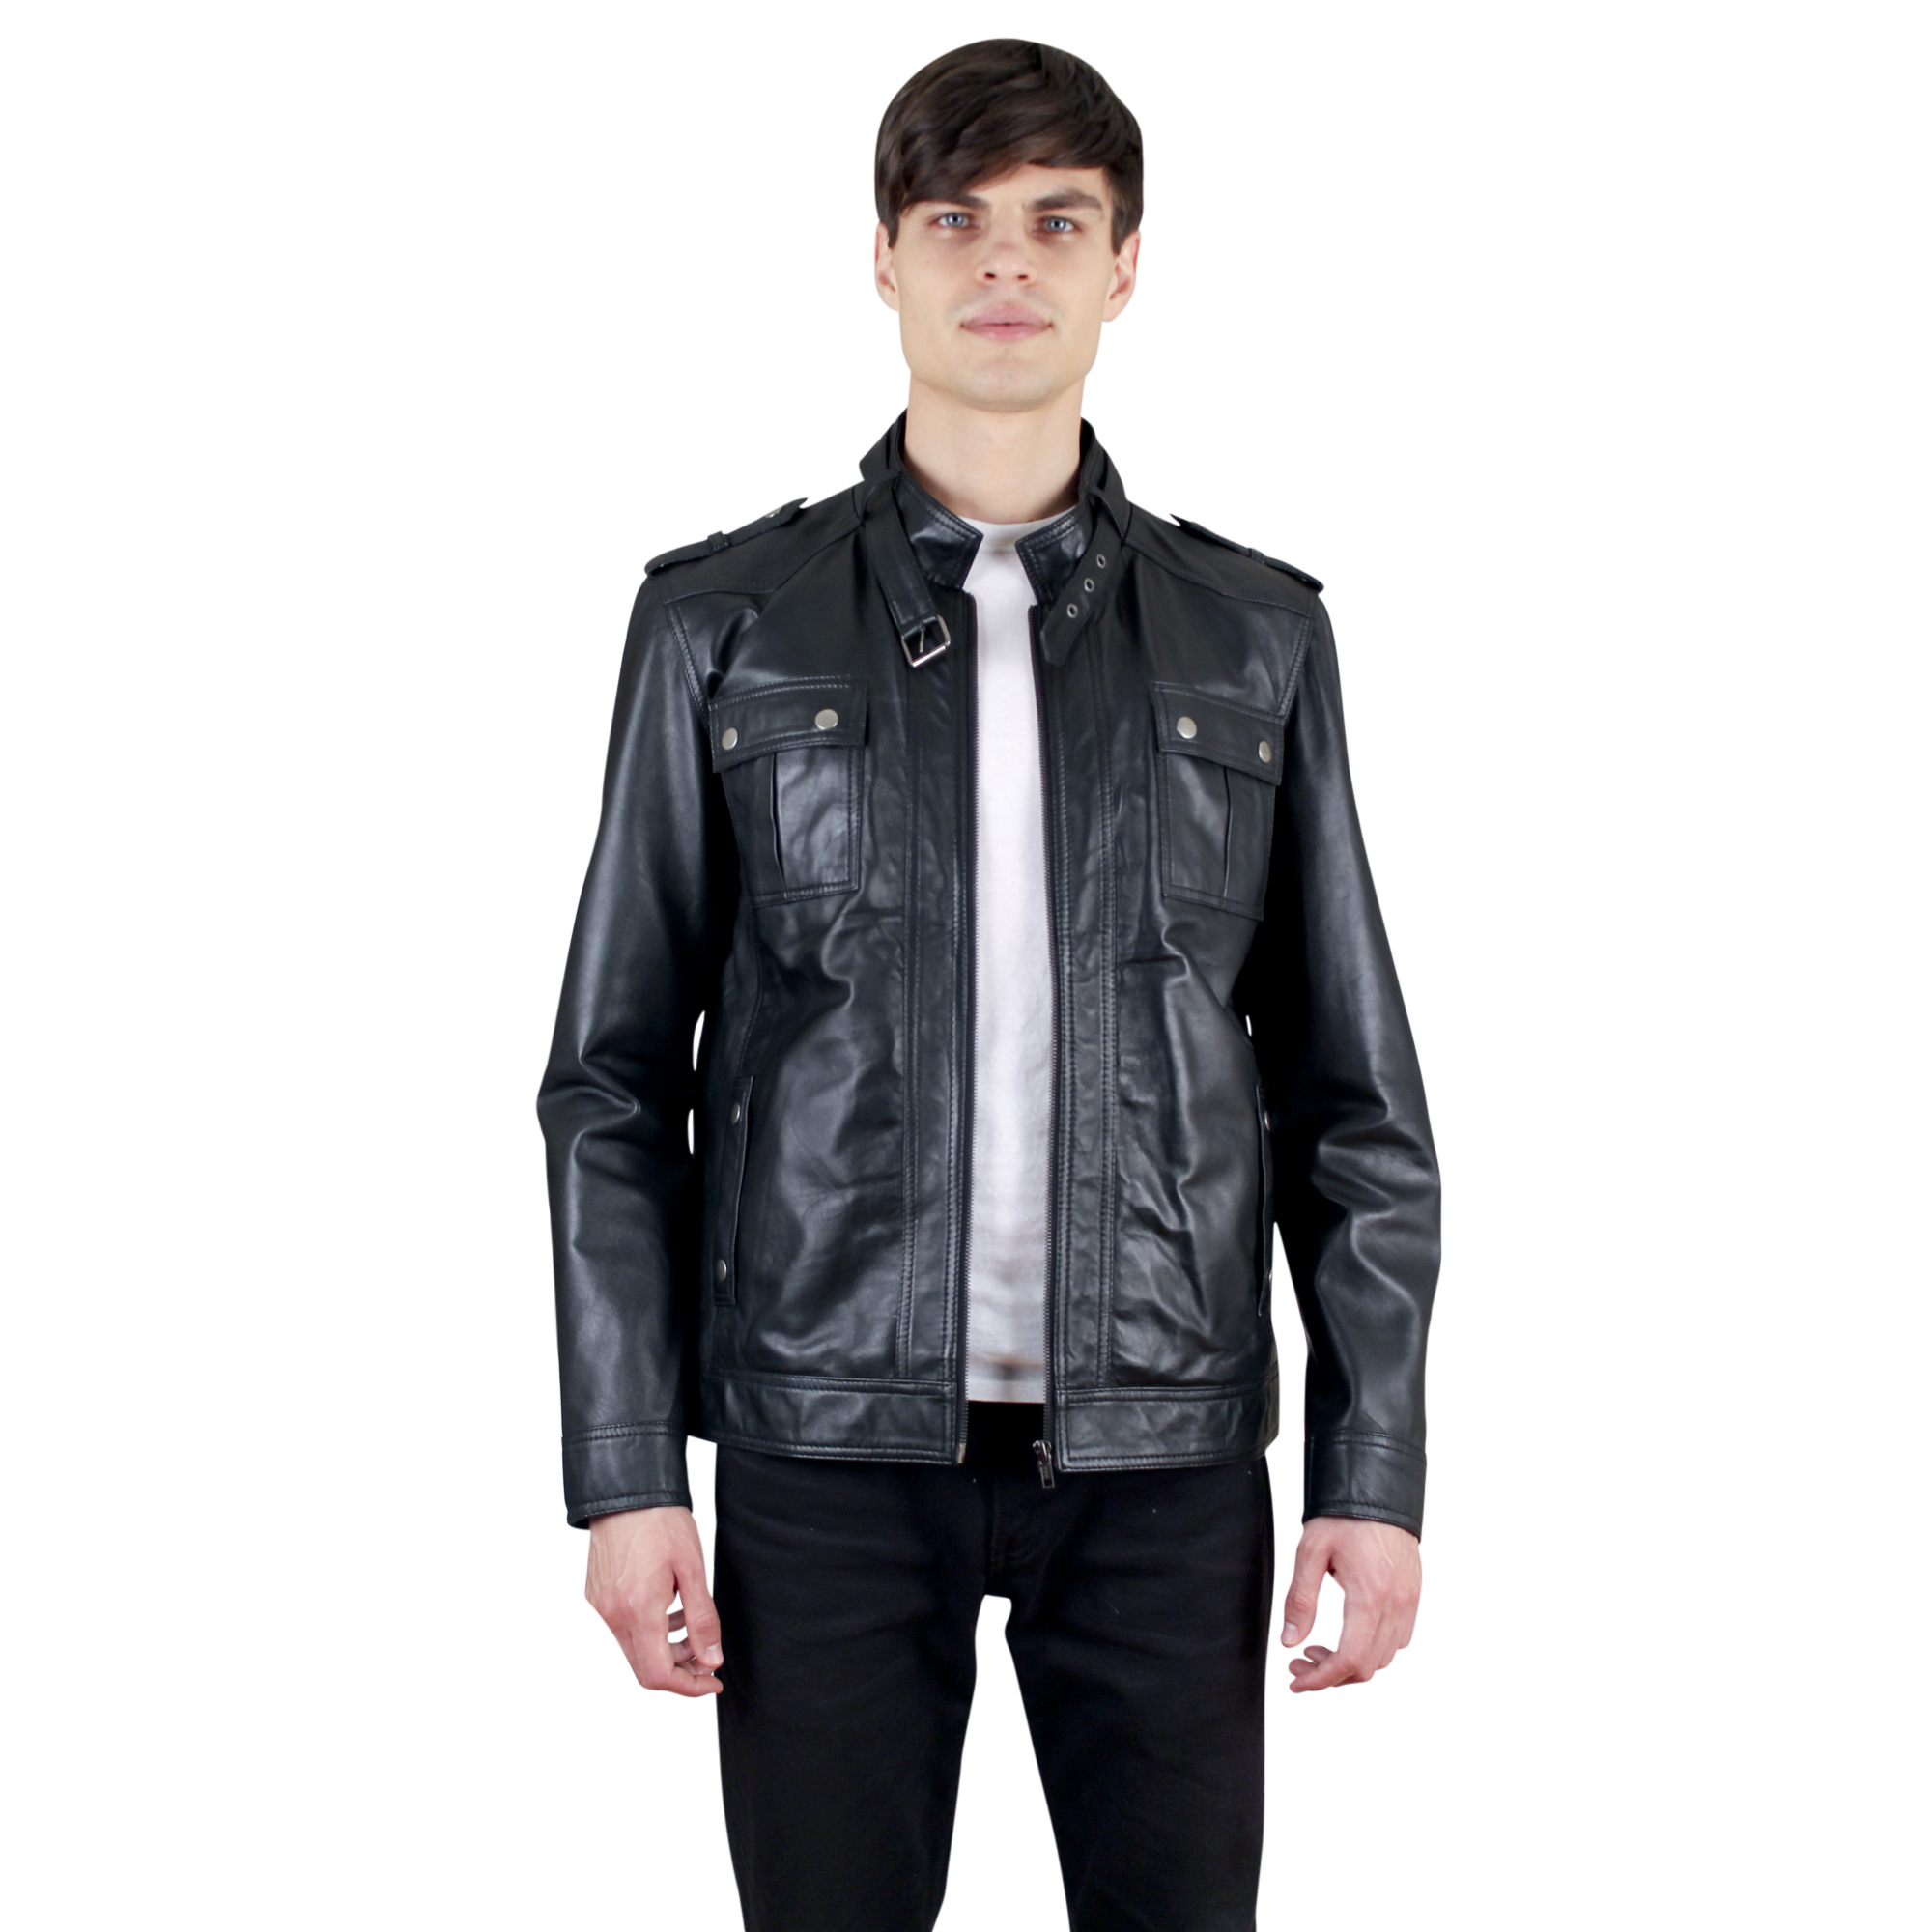 Colors: black. Sizes:  XXS XS S M L XL XXL ... The NDK New York Men�s Moto Jacket is for raw and trendy men. With its metal-studded pocket flaps and